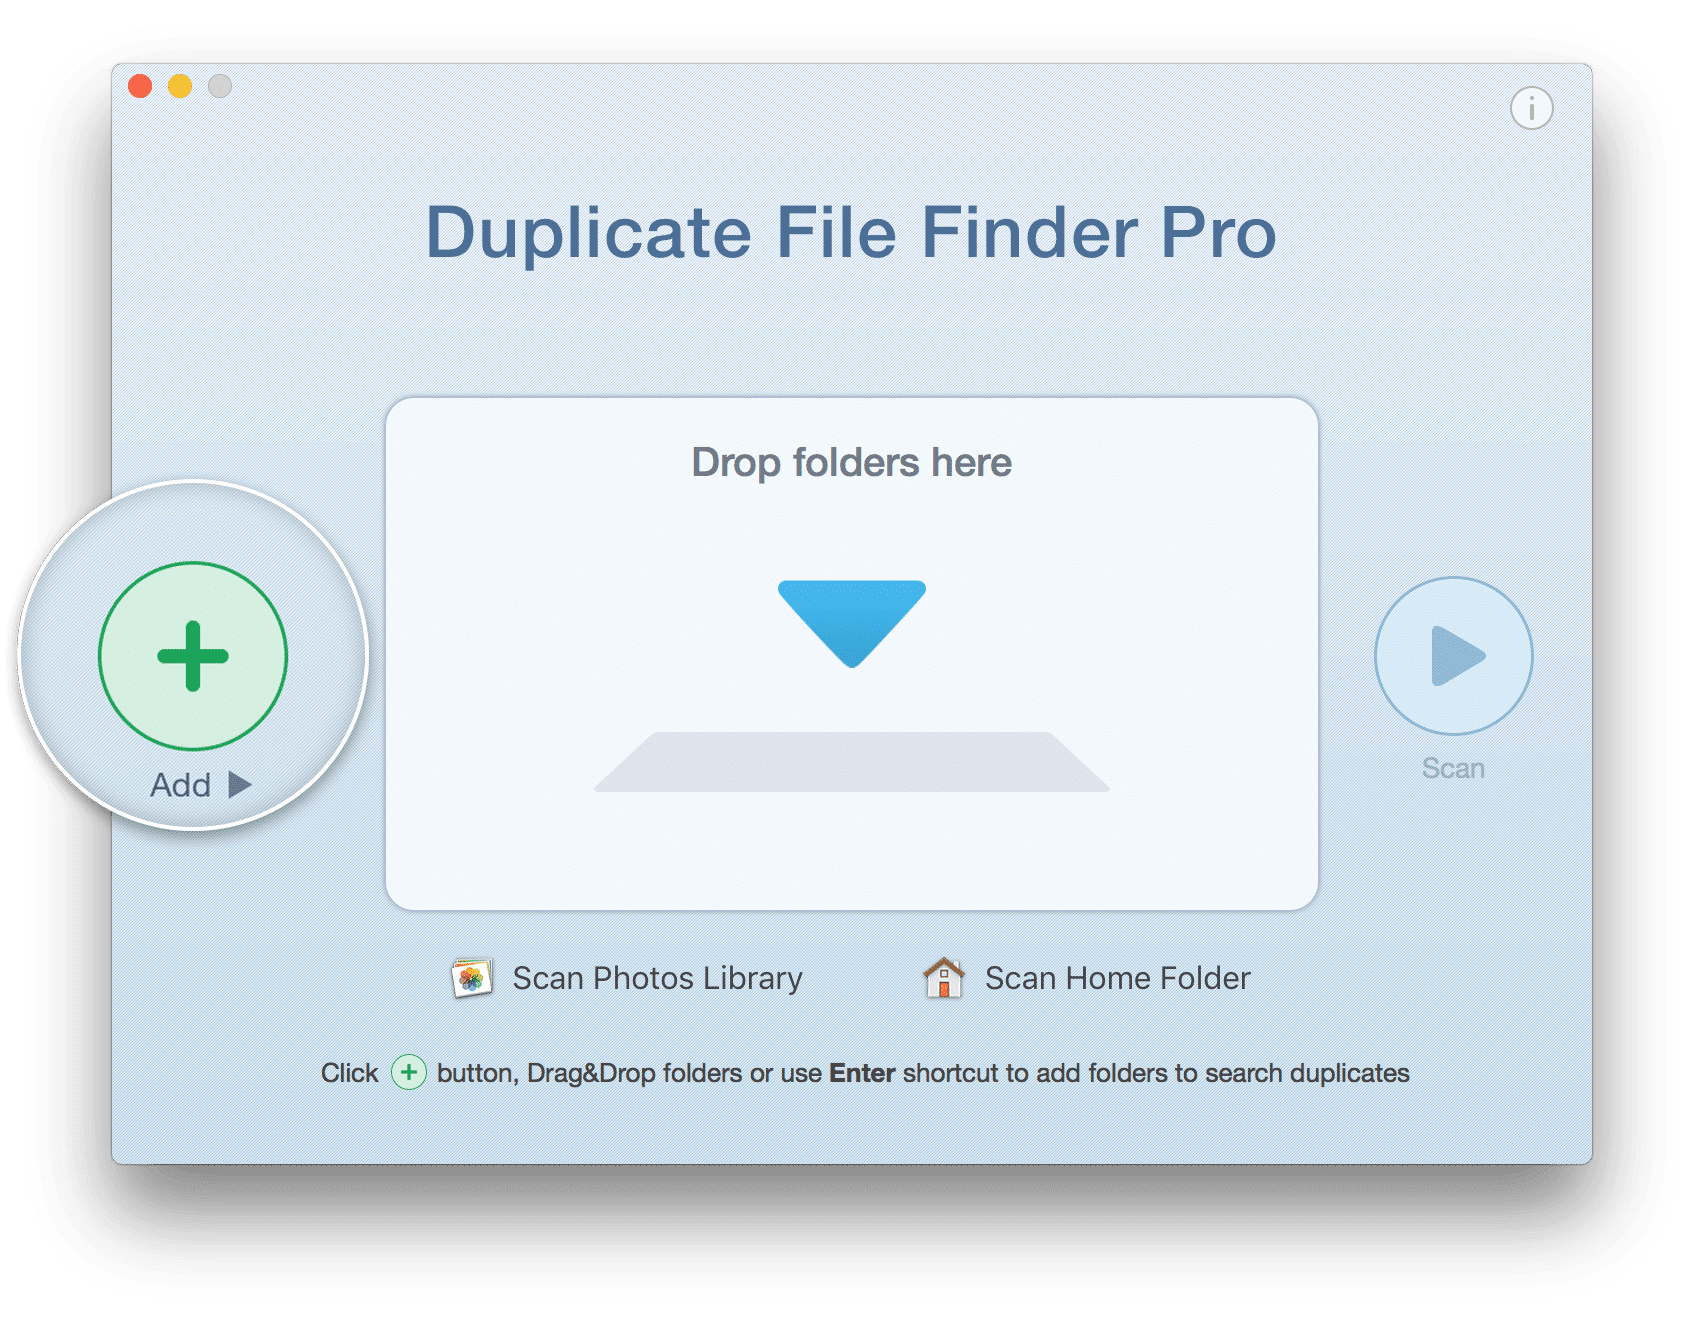 Duplicate File Finder with Add button highlighted